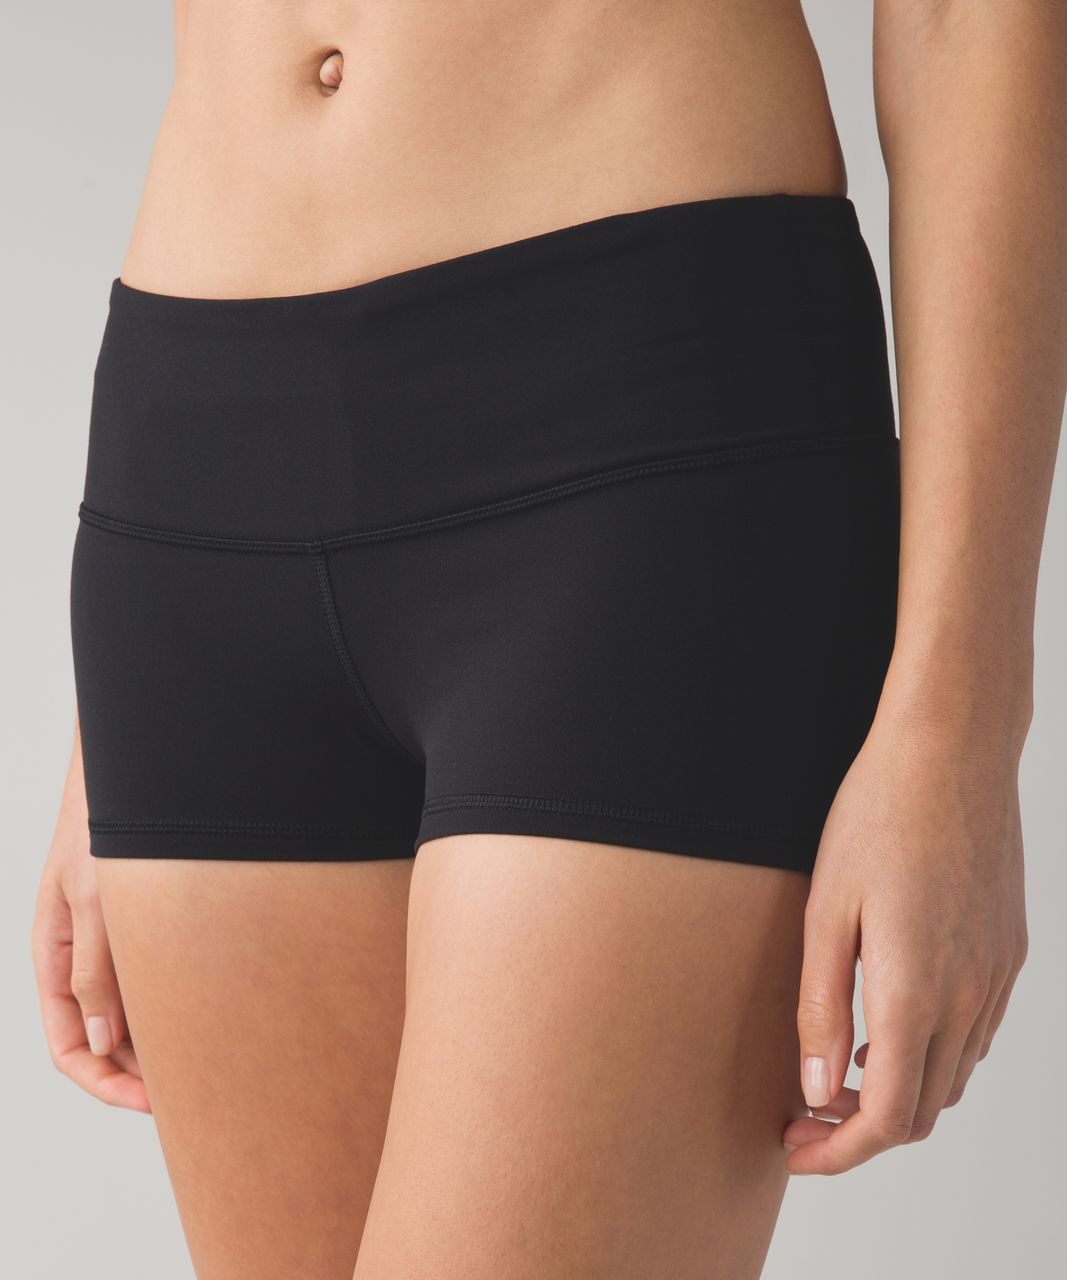 Lululemon Boogie Short - Black (First Release)